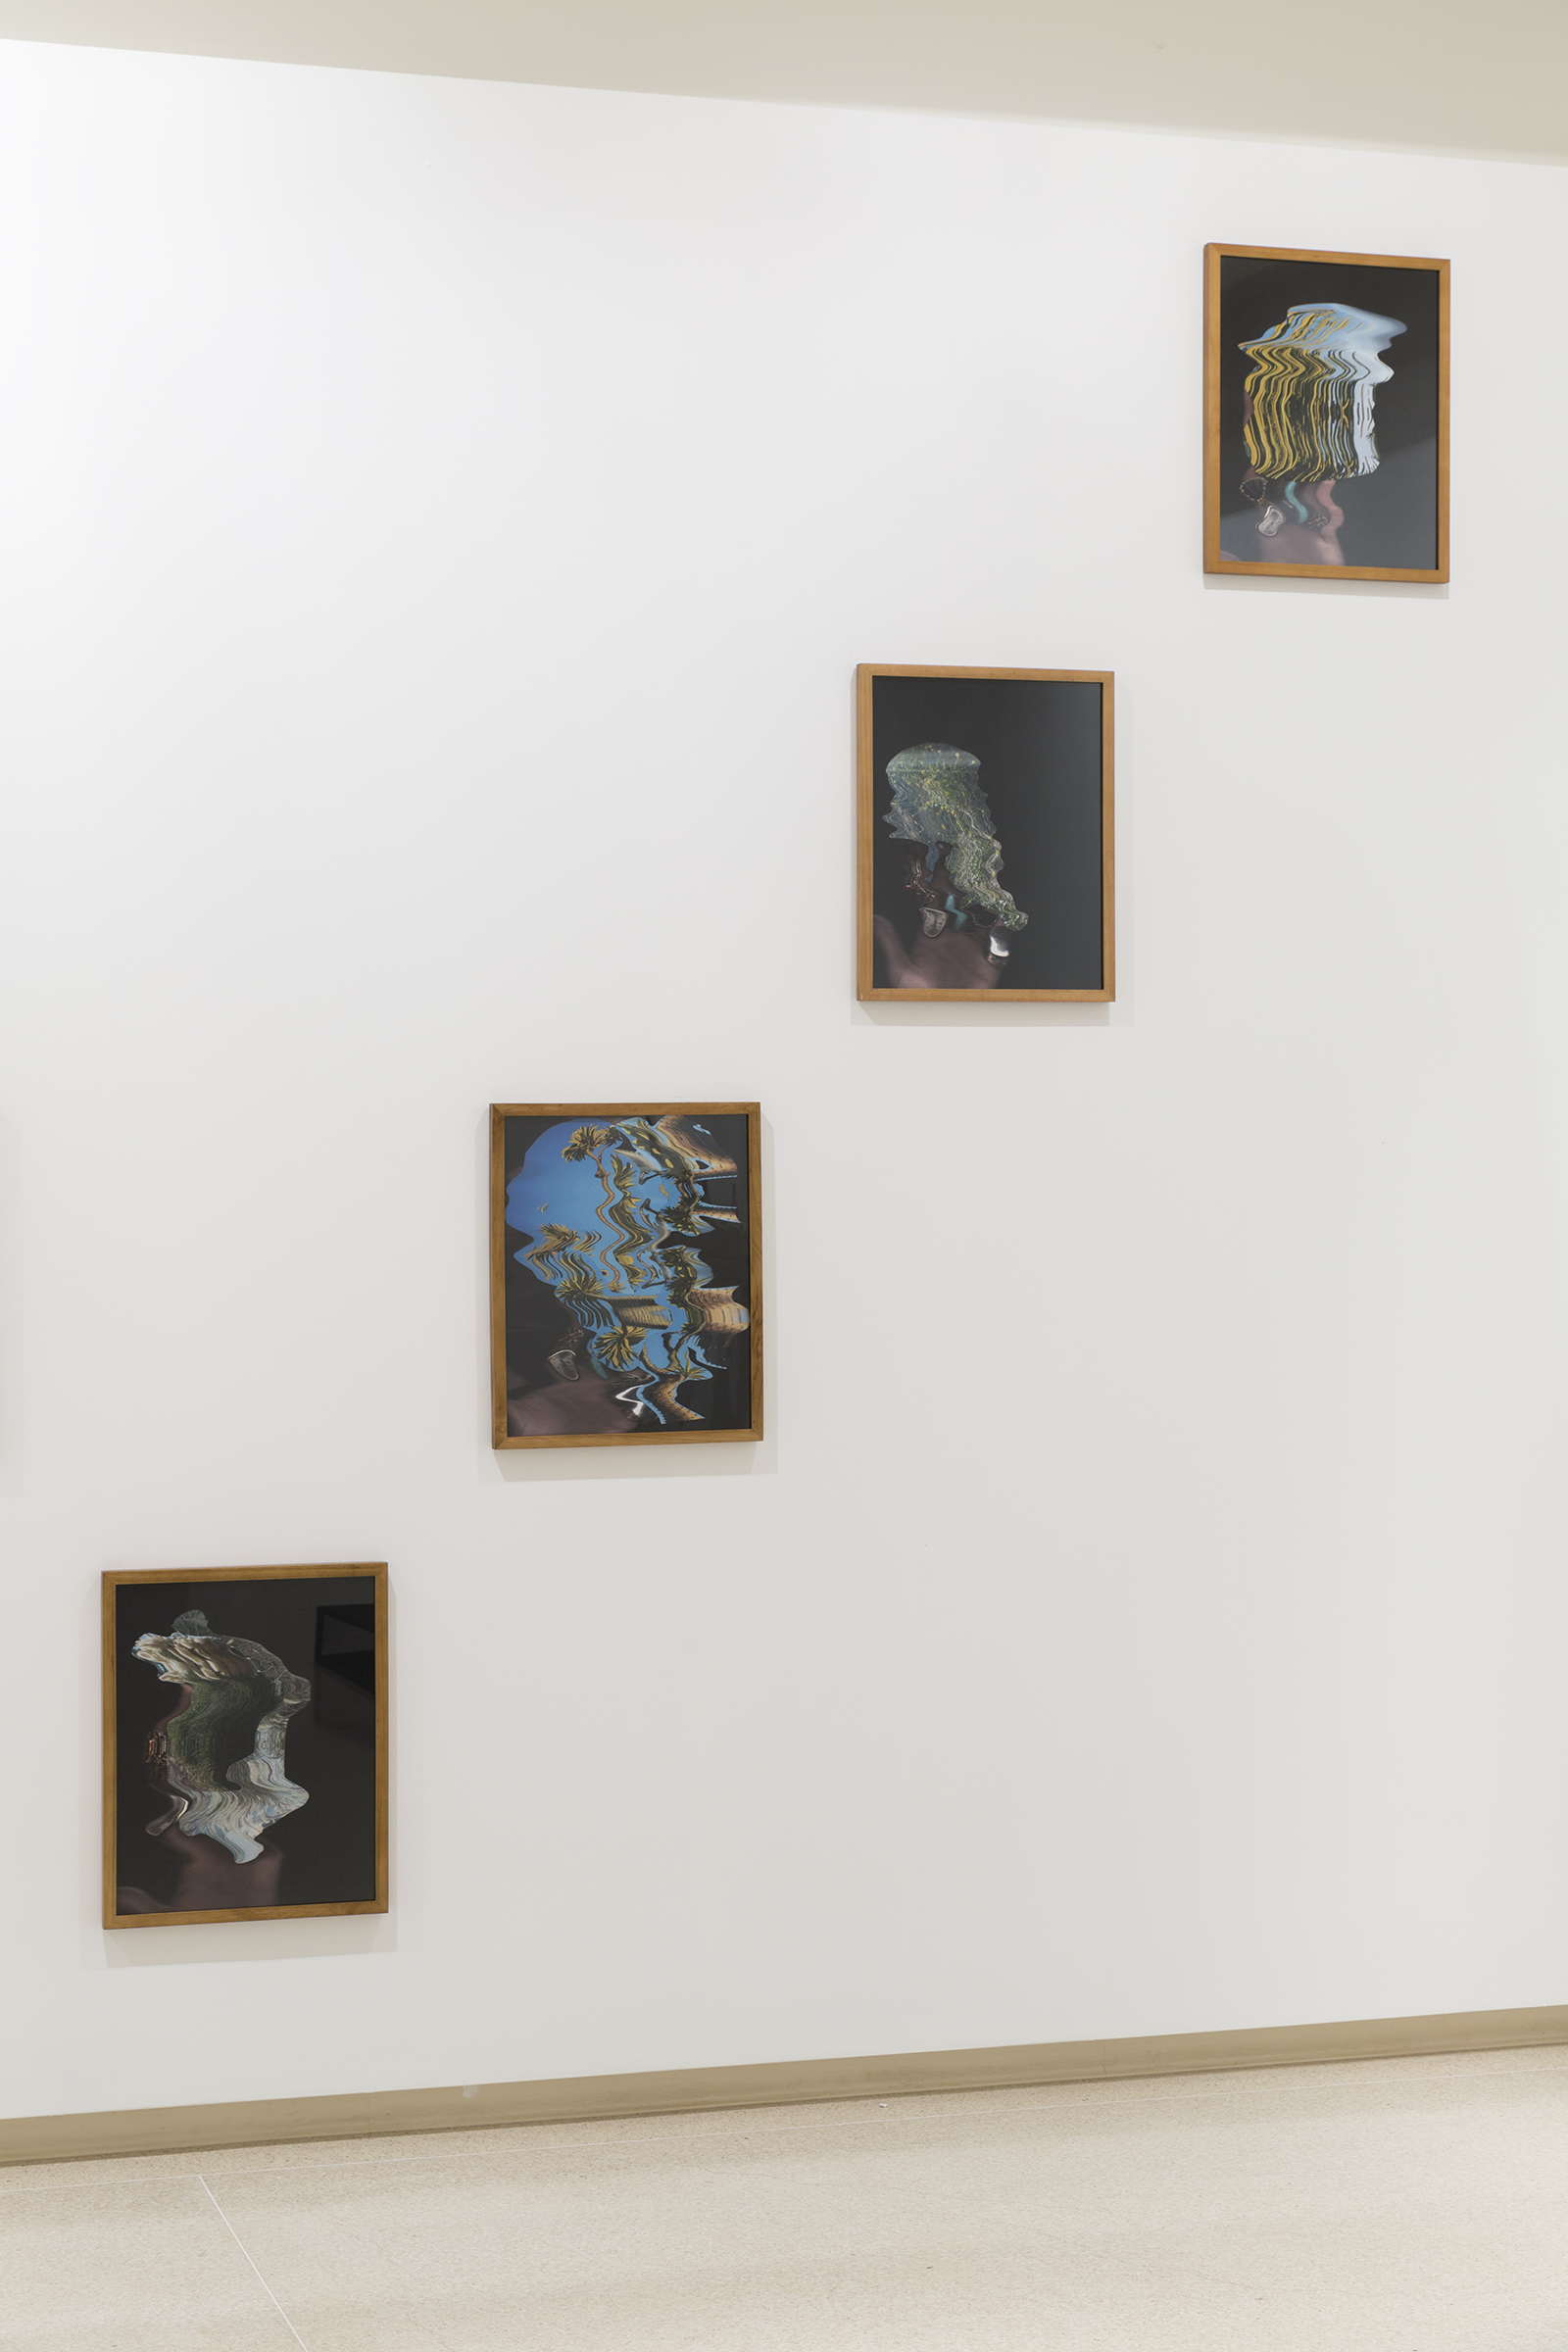 """Bent 1-13 , 2018 20 x 16 inches Silver halide archival print, artist frame  Installation view: """"Garden Variety"""" at the Brand Library and Art Center, Glendale CA"""